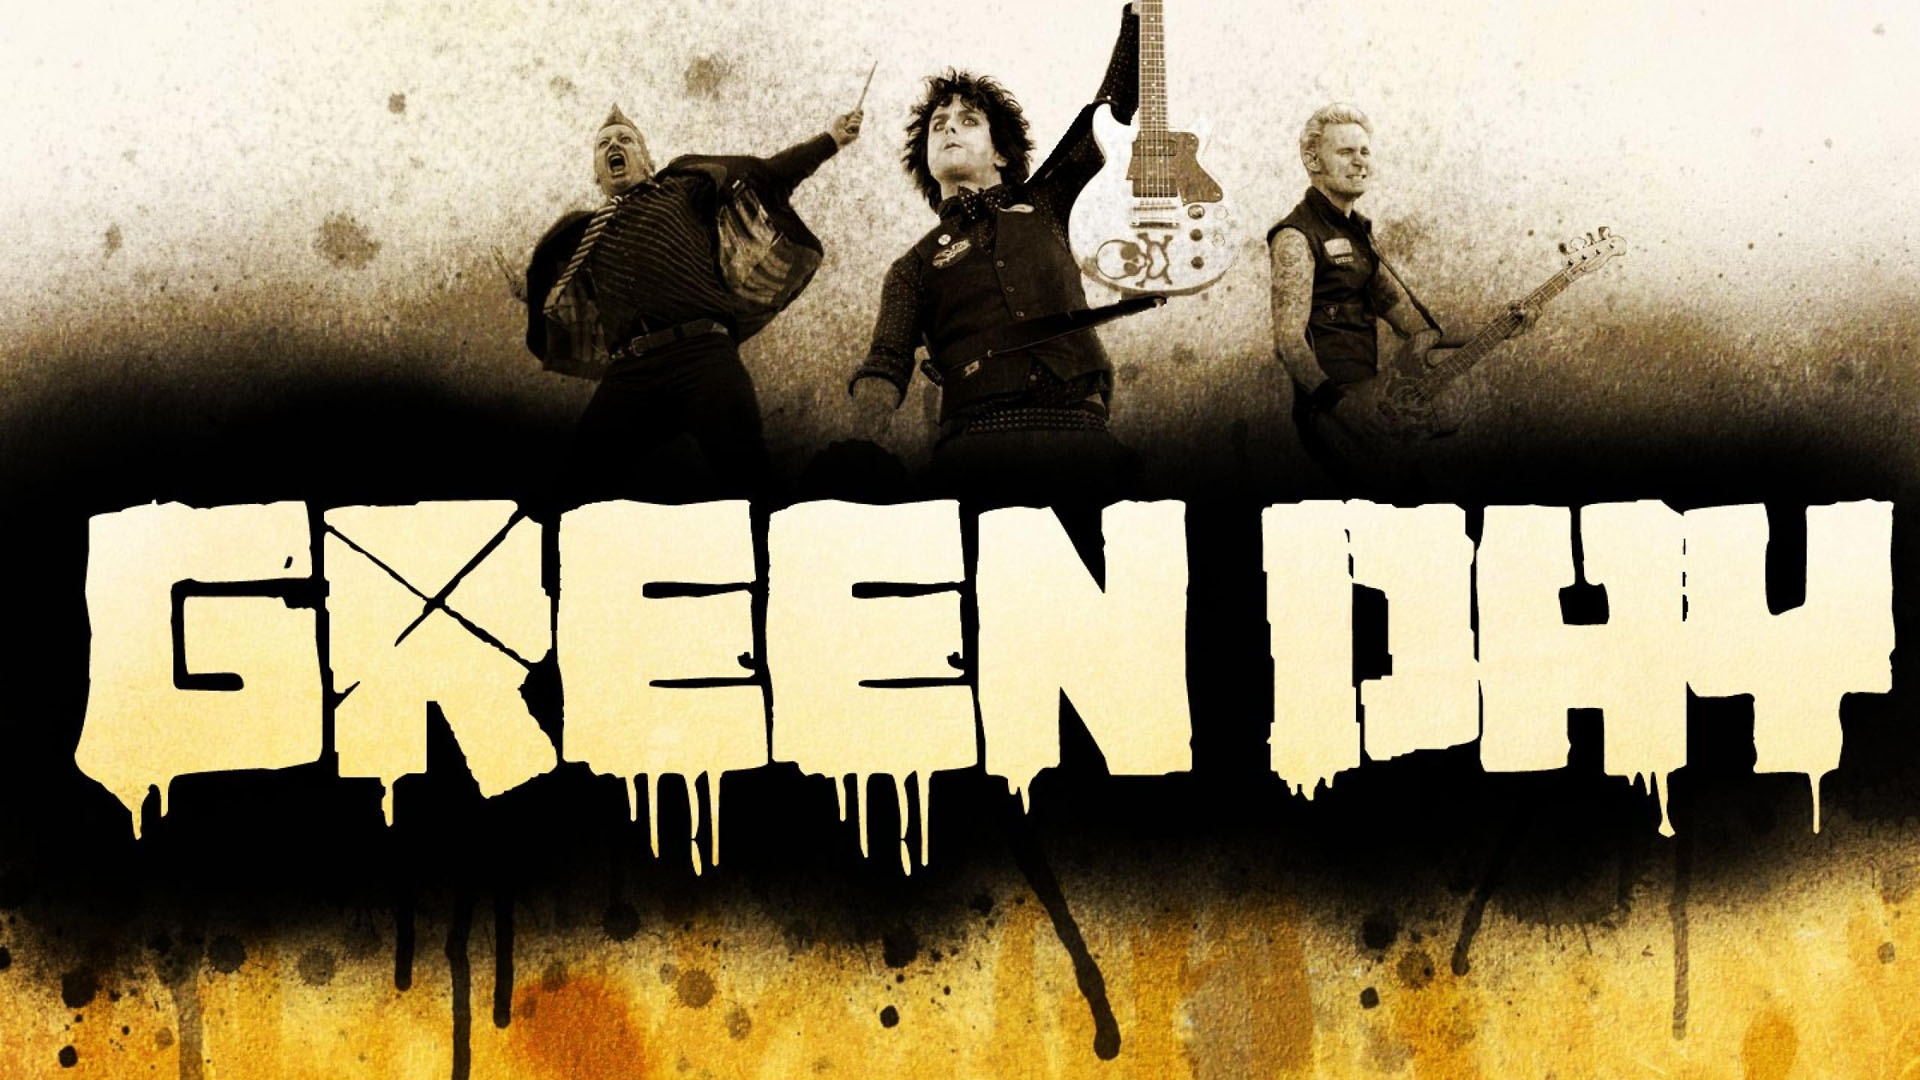 Green Day Rock Band 2013 Music Image Gallery HD Wallpaper Widescreen 1920x1080